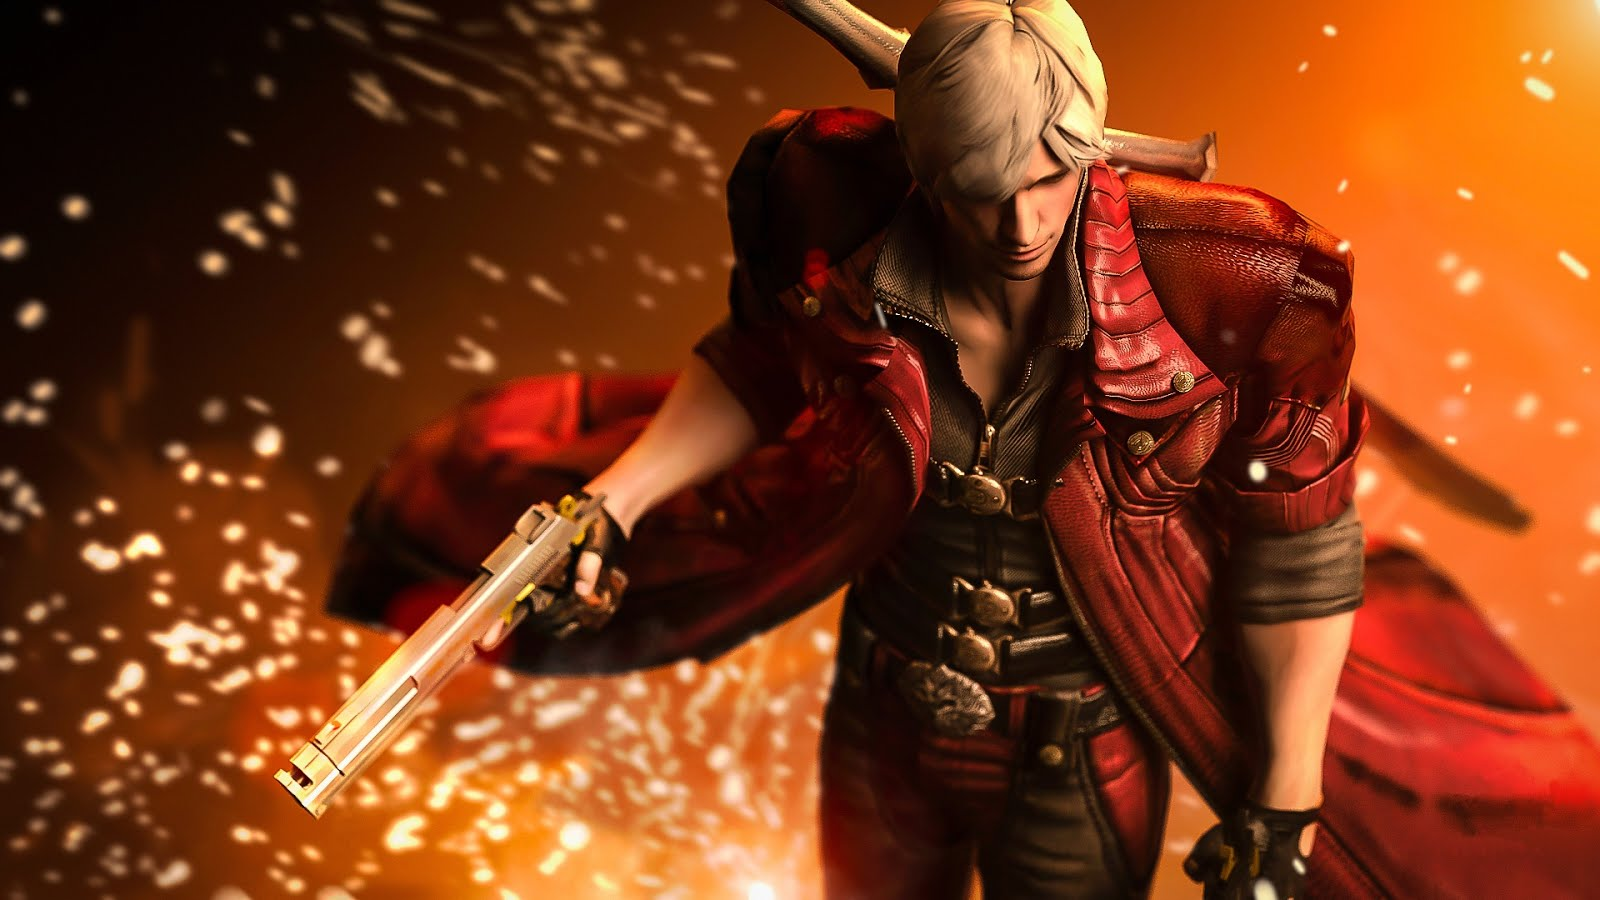 ديفل ماي كراي 5,Devil May Cry 5,Wallpapers Devil May Cry, خلفيات العاب,